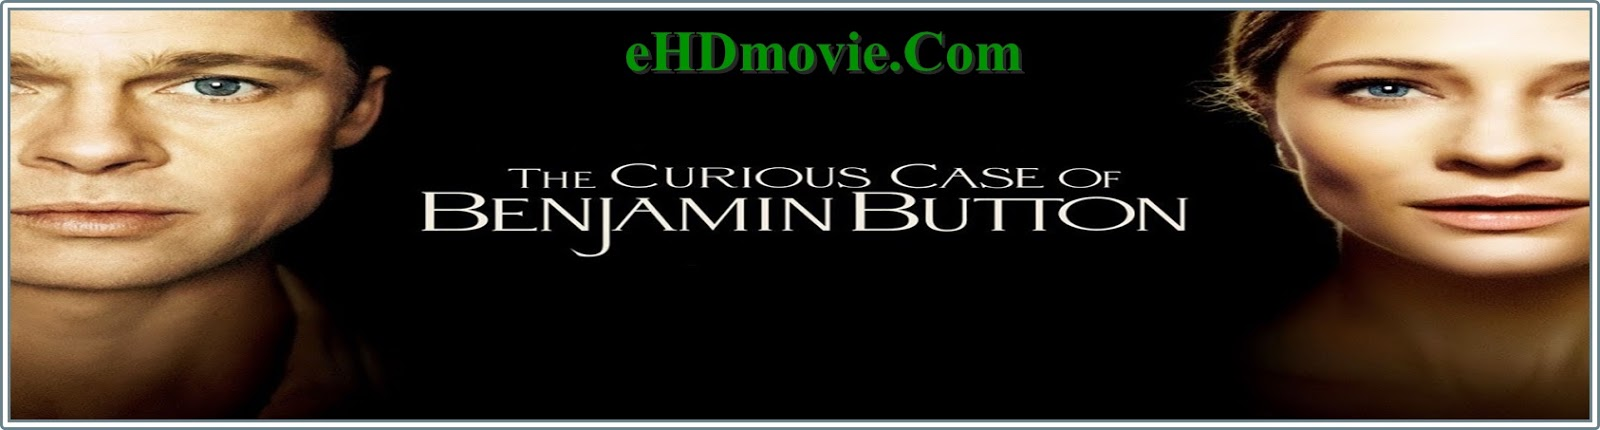 The Curious Case of Benjamin Button 2008 Full Movie Dual Audio [Hindi – English] 720p - 480p ORG BRRip 500MB - 1.4GB ESubs Free Download